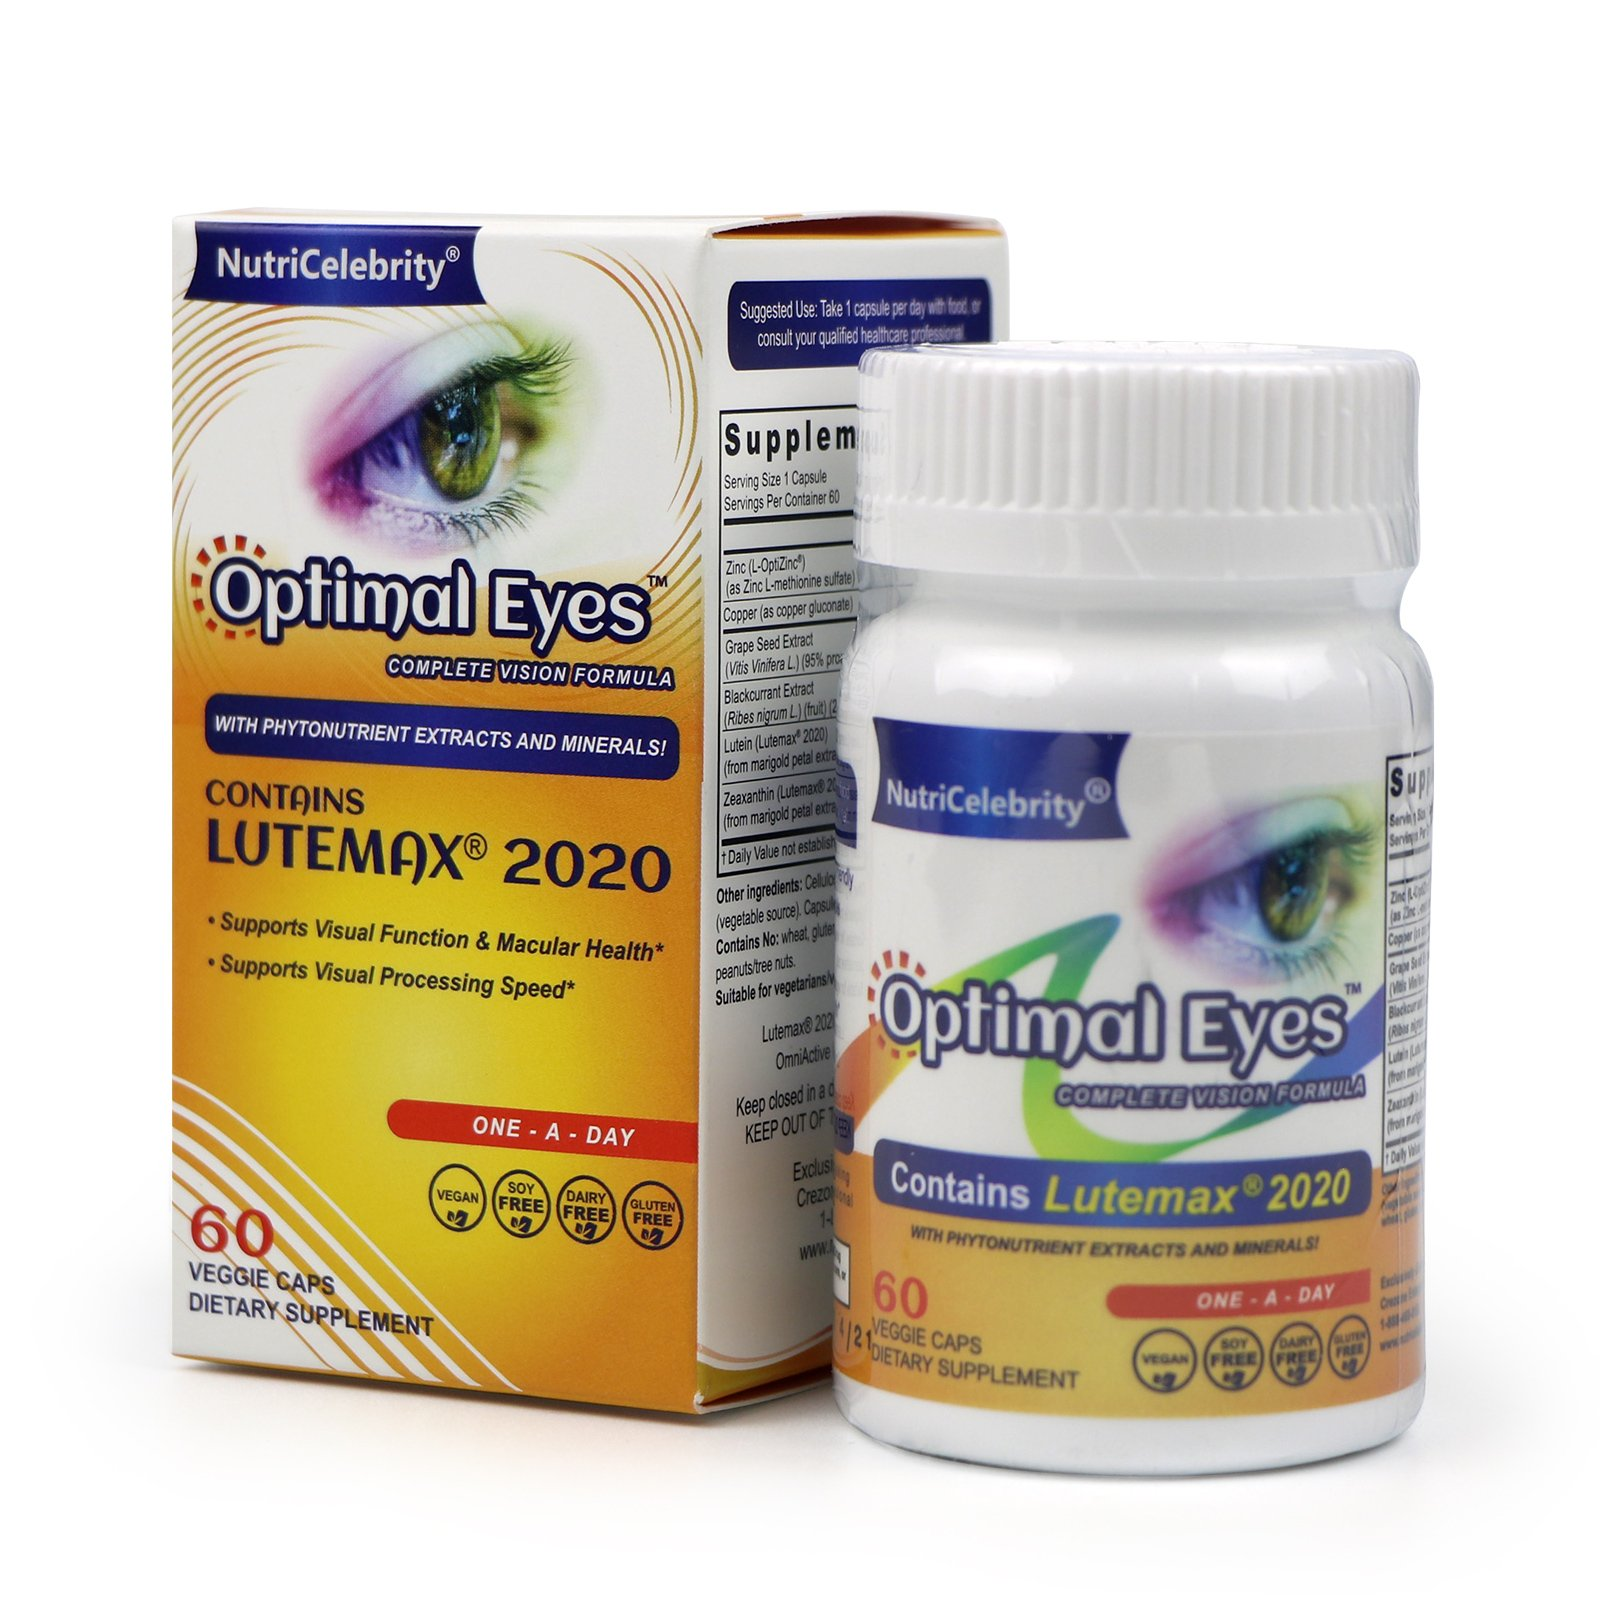 Nutricelebrity Optimal Eyes - Natural Eye Vitamins - Marigold Lutein and Black Currant - Lutemax Zeaxanthin - Eye Health and Macular support - Vegan 60 caps - Non-GMO - Made in USA